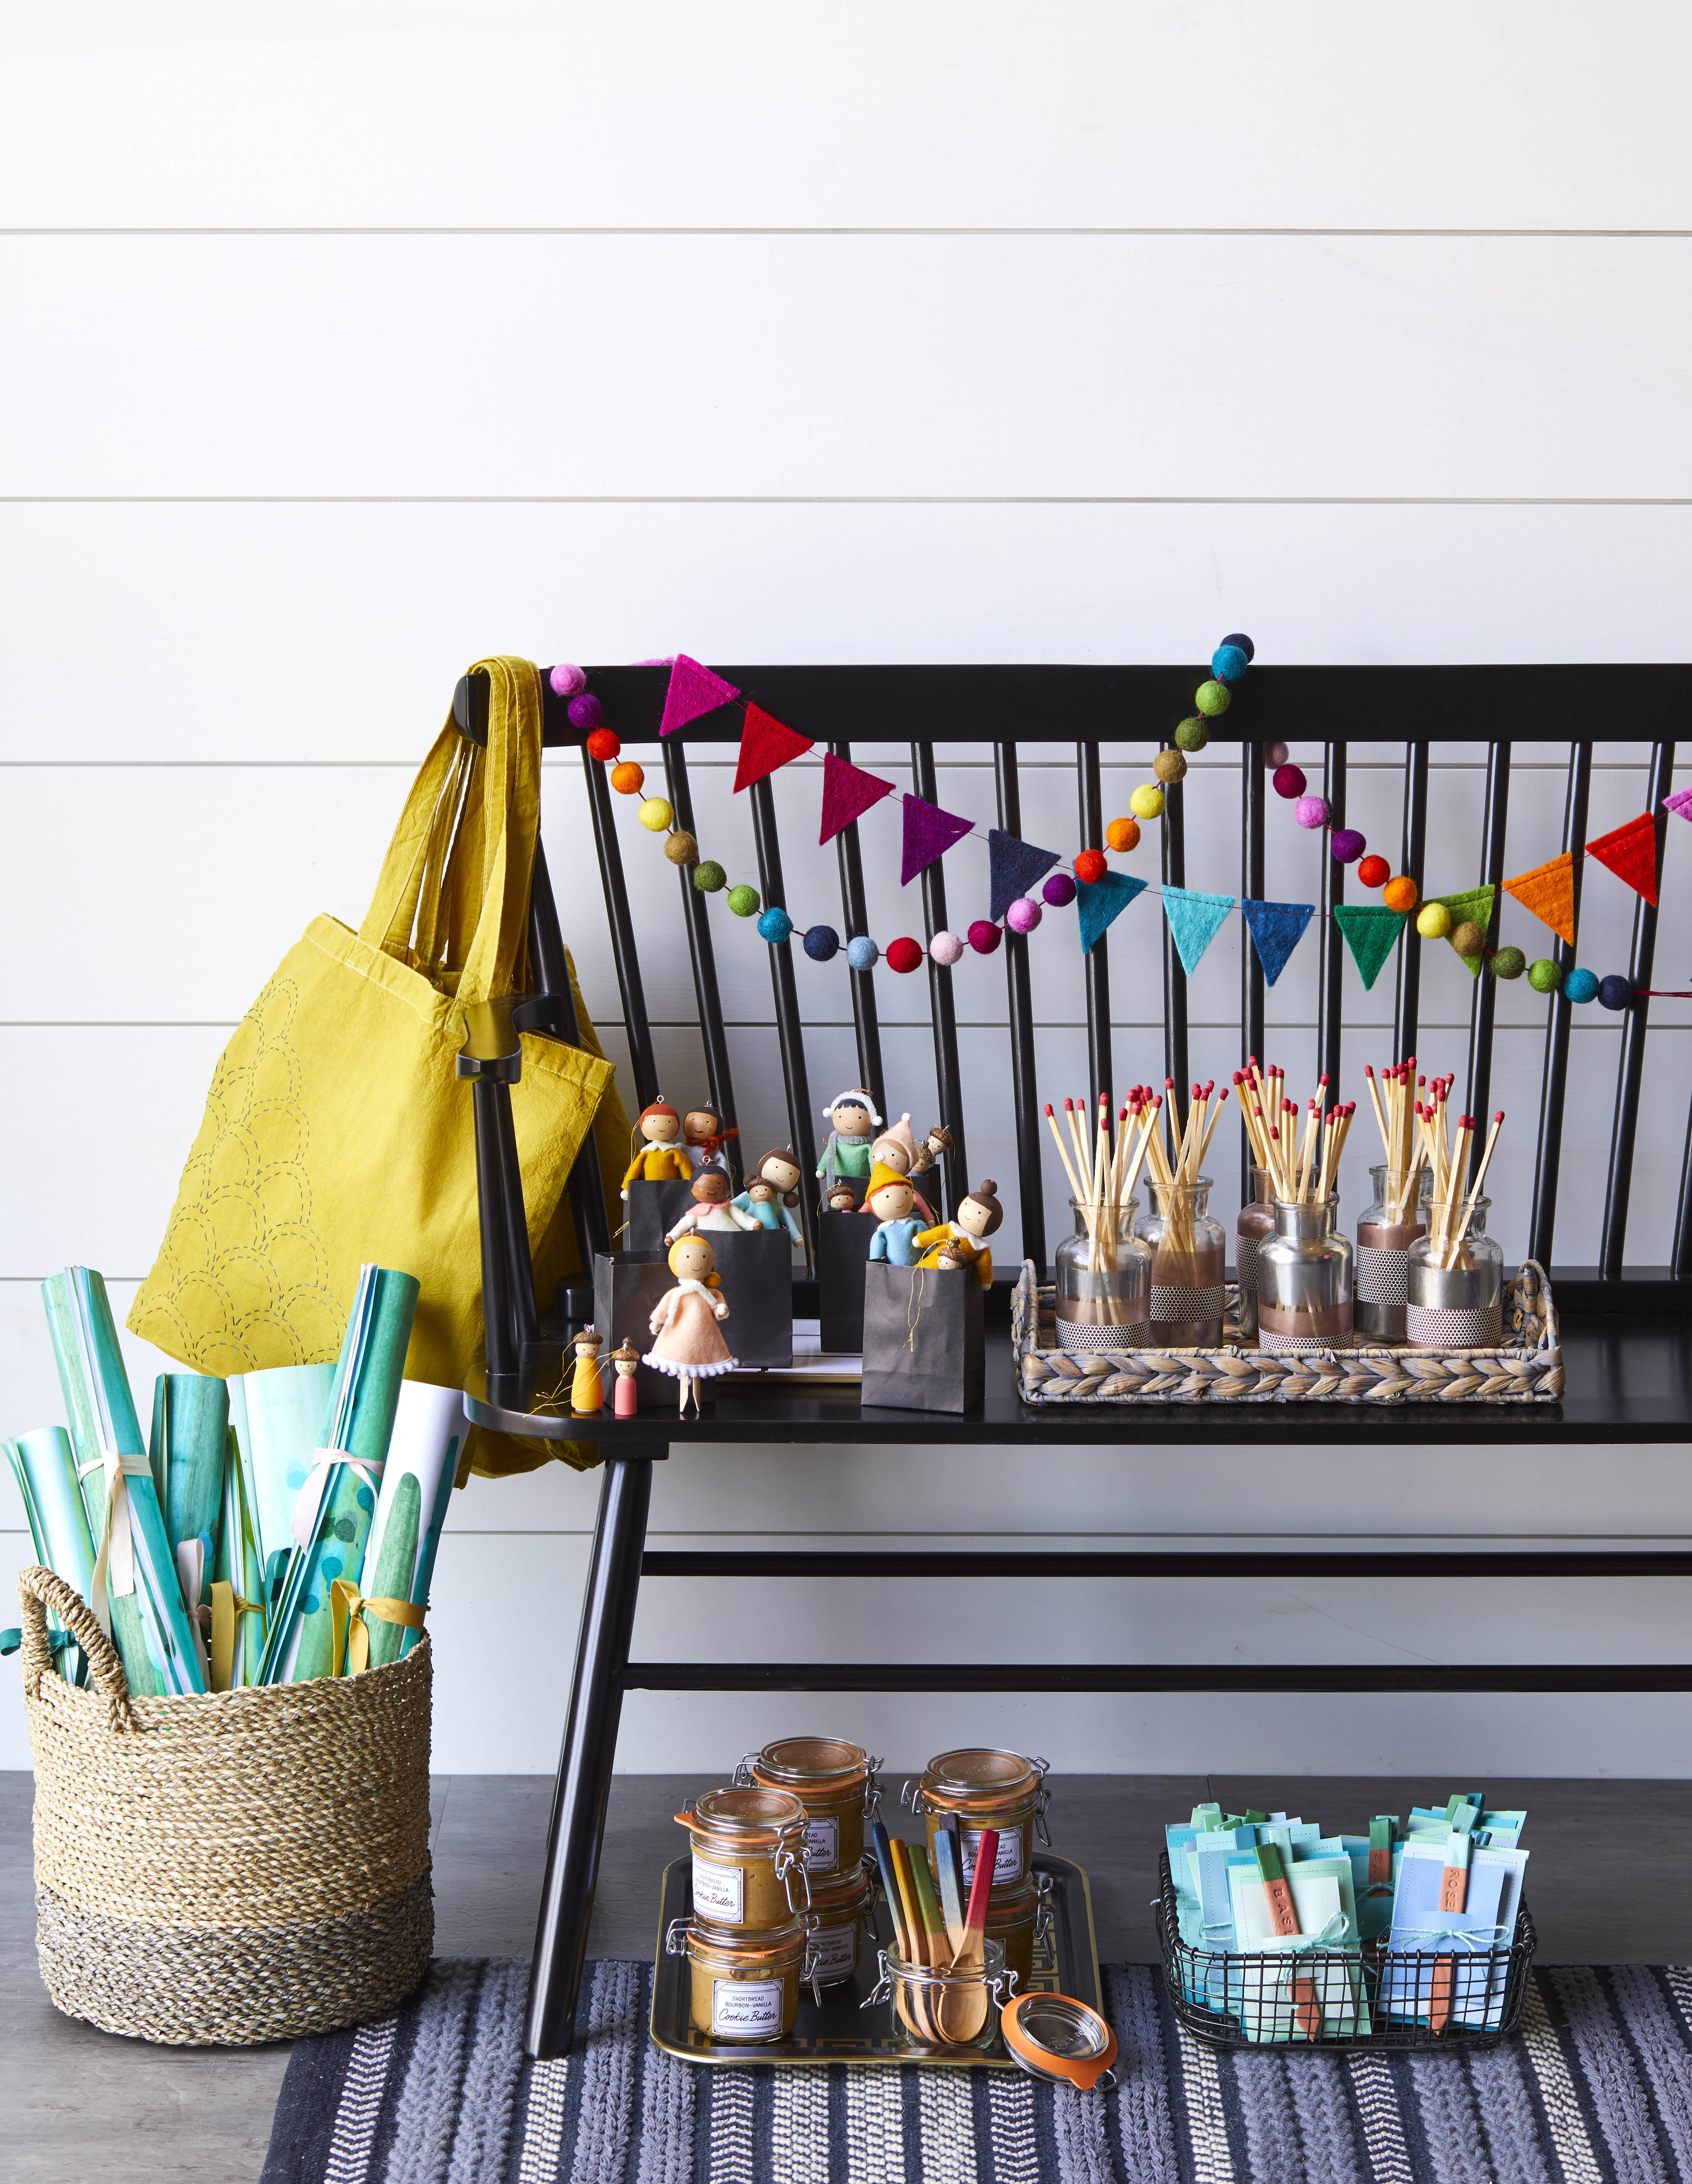 Christmas gifts and crafts on a black bench